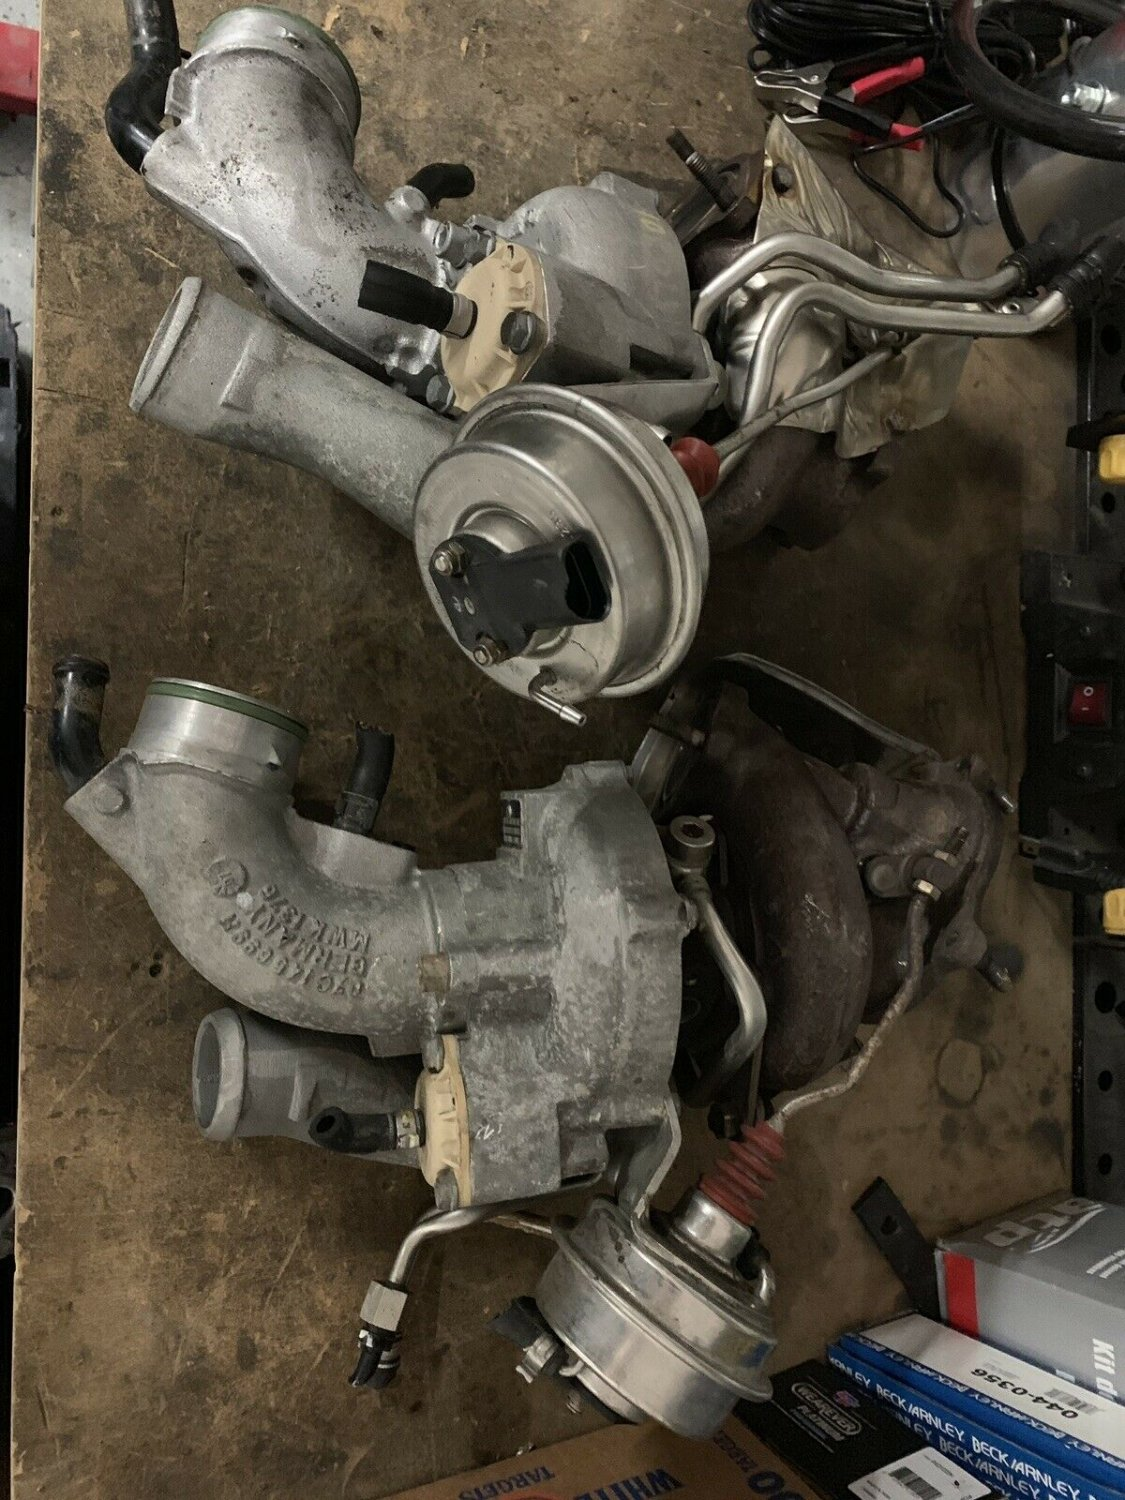 07-11 Bentley Continental GT GTC Right And Left Turbochargers Turbos Supersports